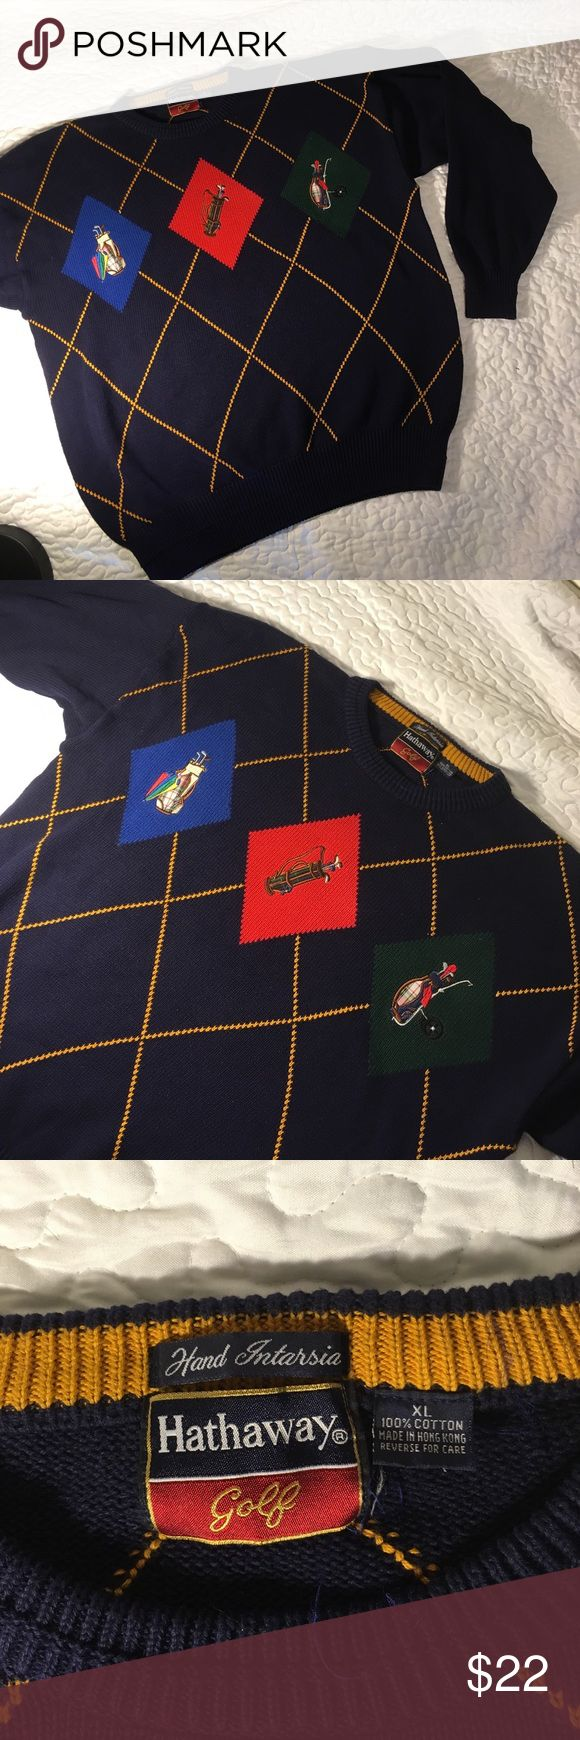 Hathaway Golf Sweater x 100 cotton Size XL x excellent used condition x great logos on front x no rips or stains x great gift for the golfer in your family x different than today's sweaters Hathaway Golf Sweaters Crewneck